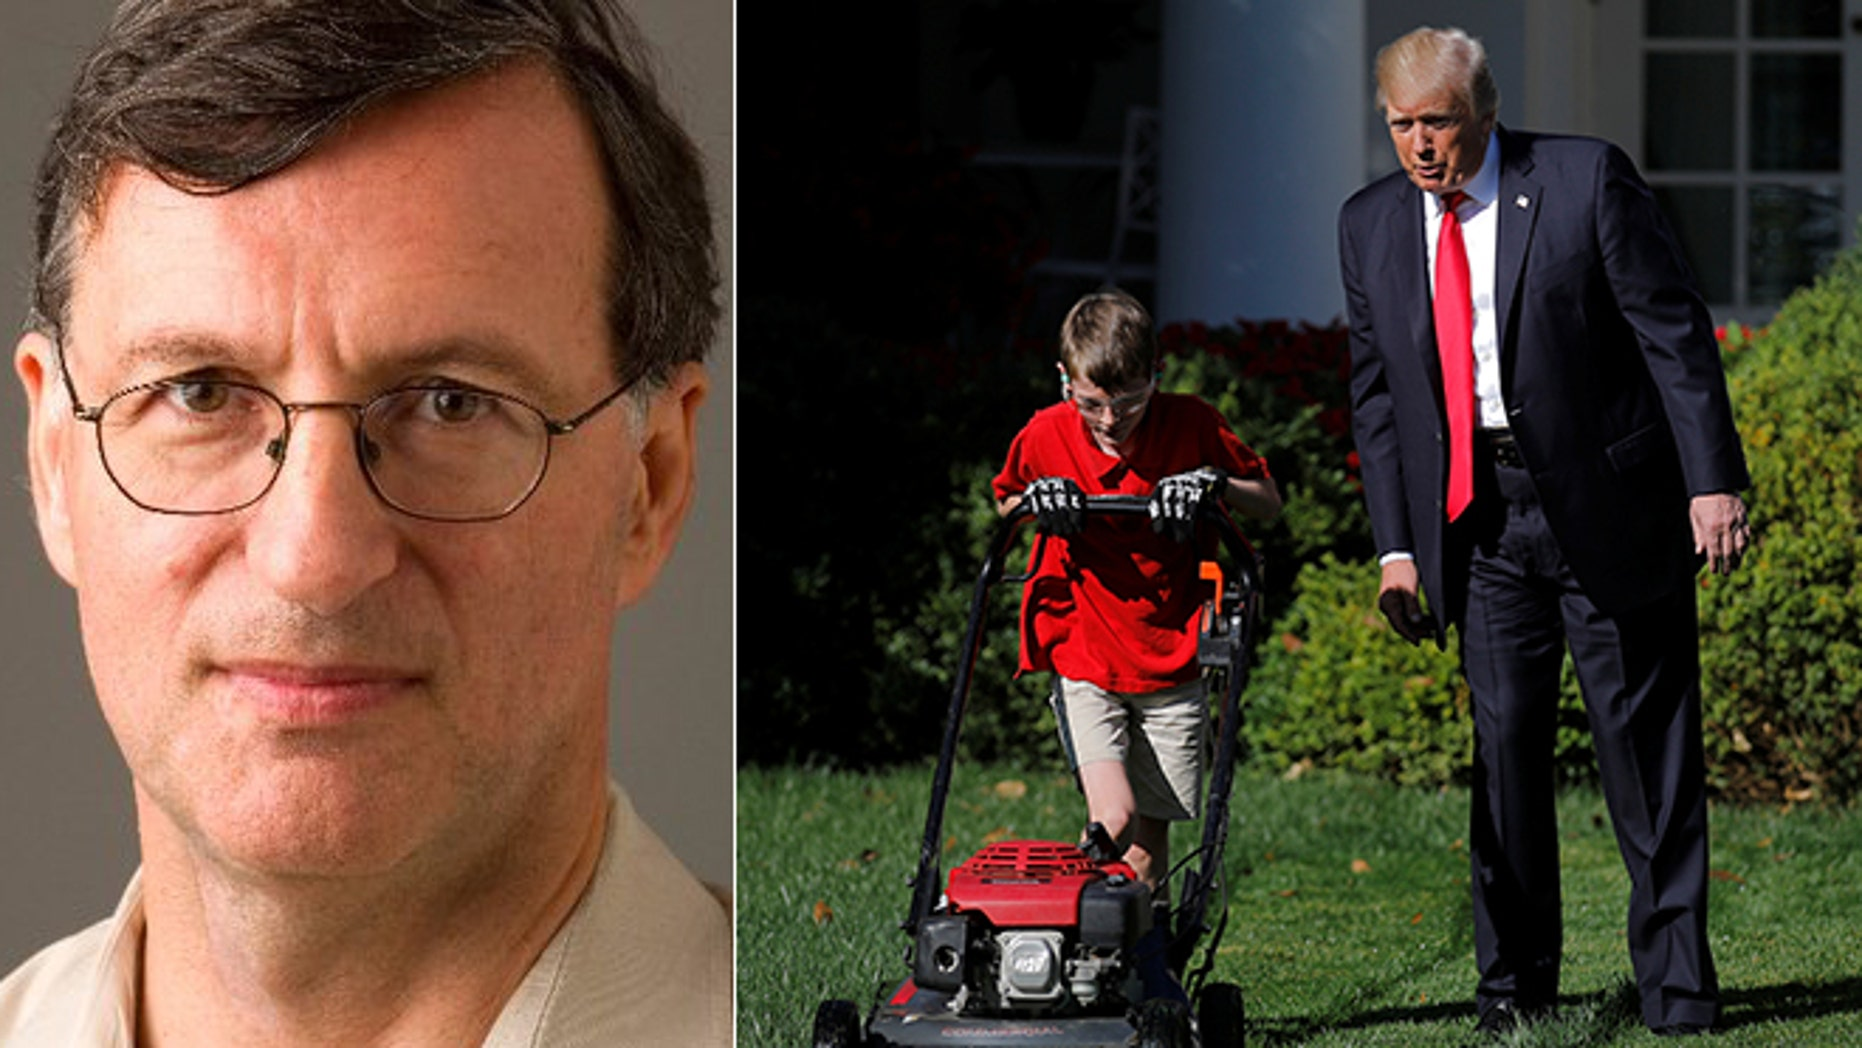 Steven Greenhouse, left, tweeted that the lawn-mowing gig was 'not sending a great signal on child labor, minimum wage & occupational safety.'